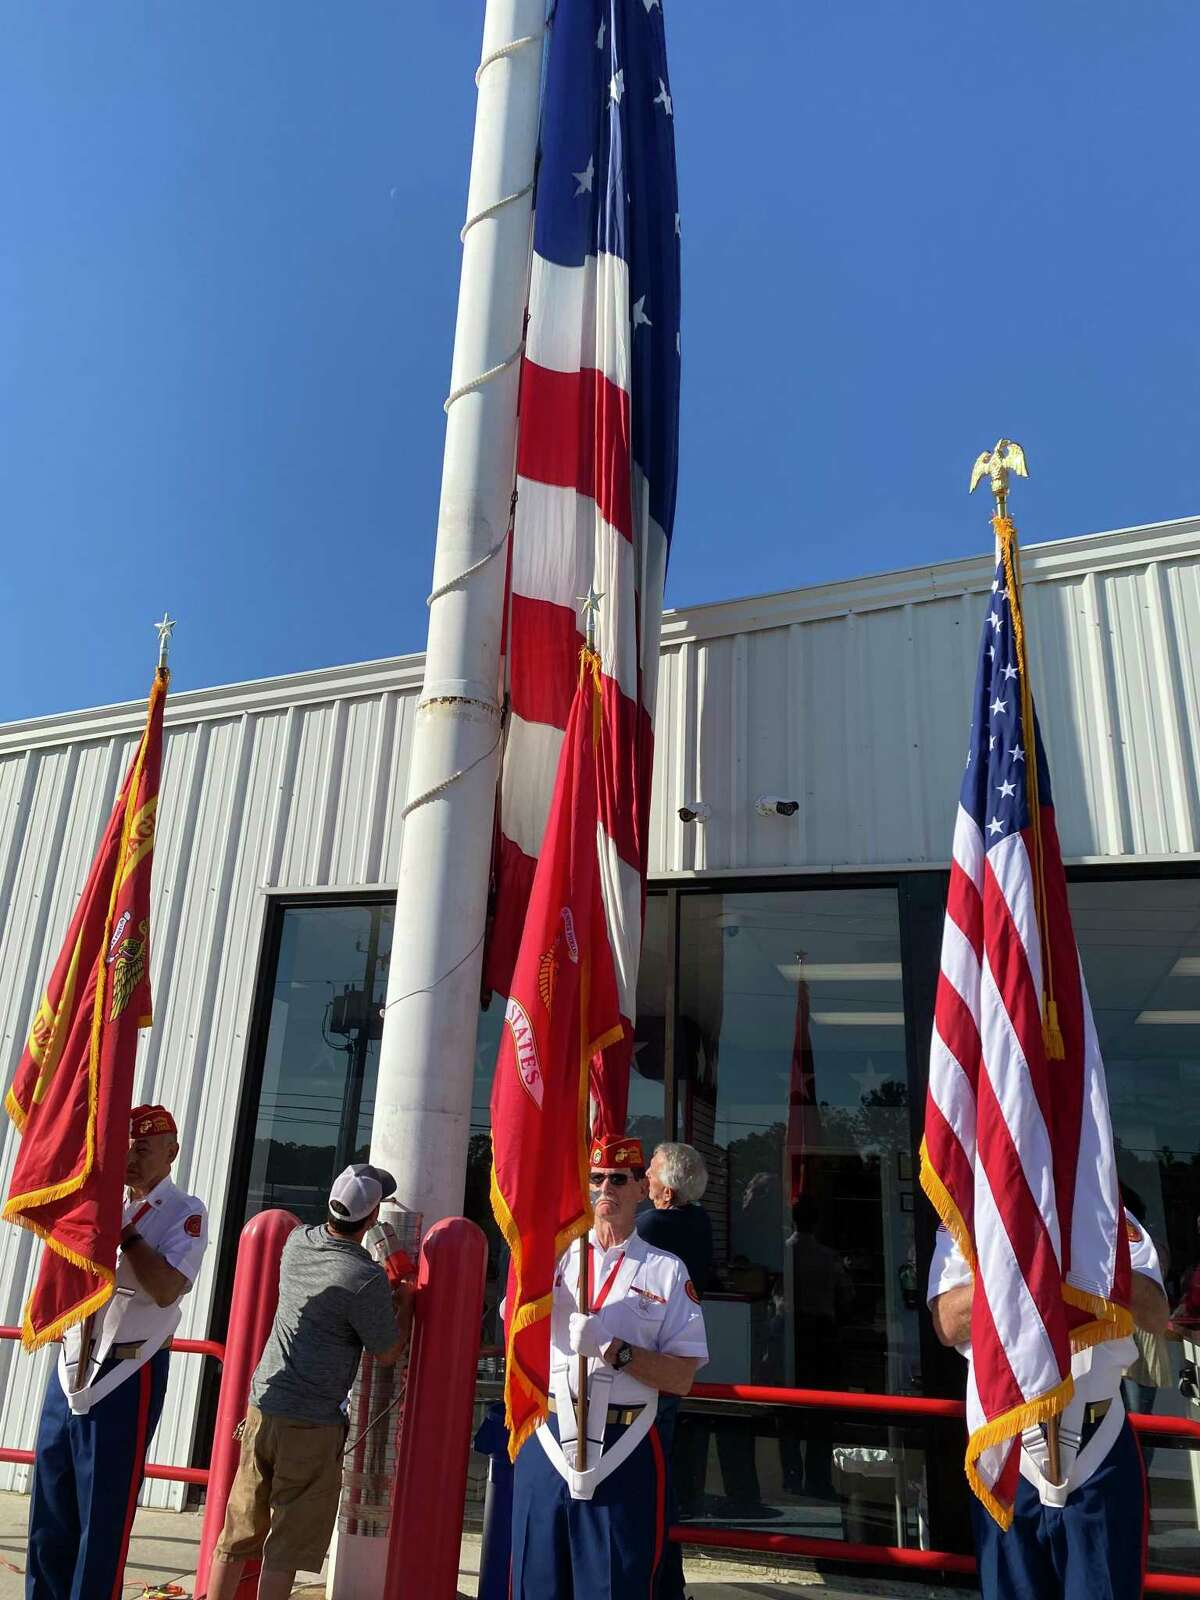 Lewis R. Shannon, 102, a World War II veteran, was honored at Storage 105 on Wednesday morning. A new American flag was raised and dedicated in Shannon's honor Wednesday.